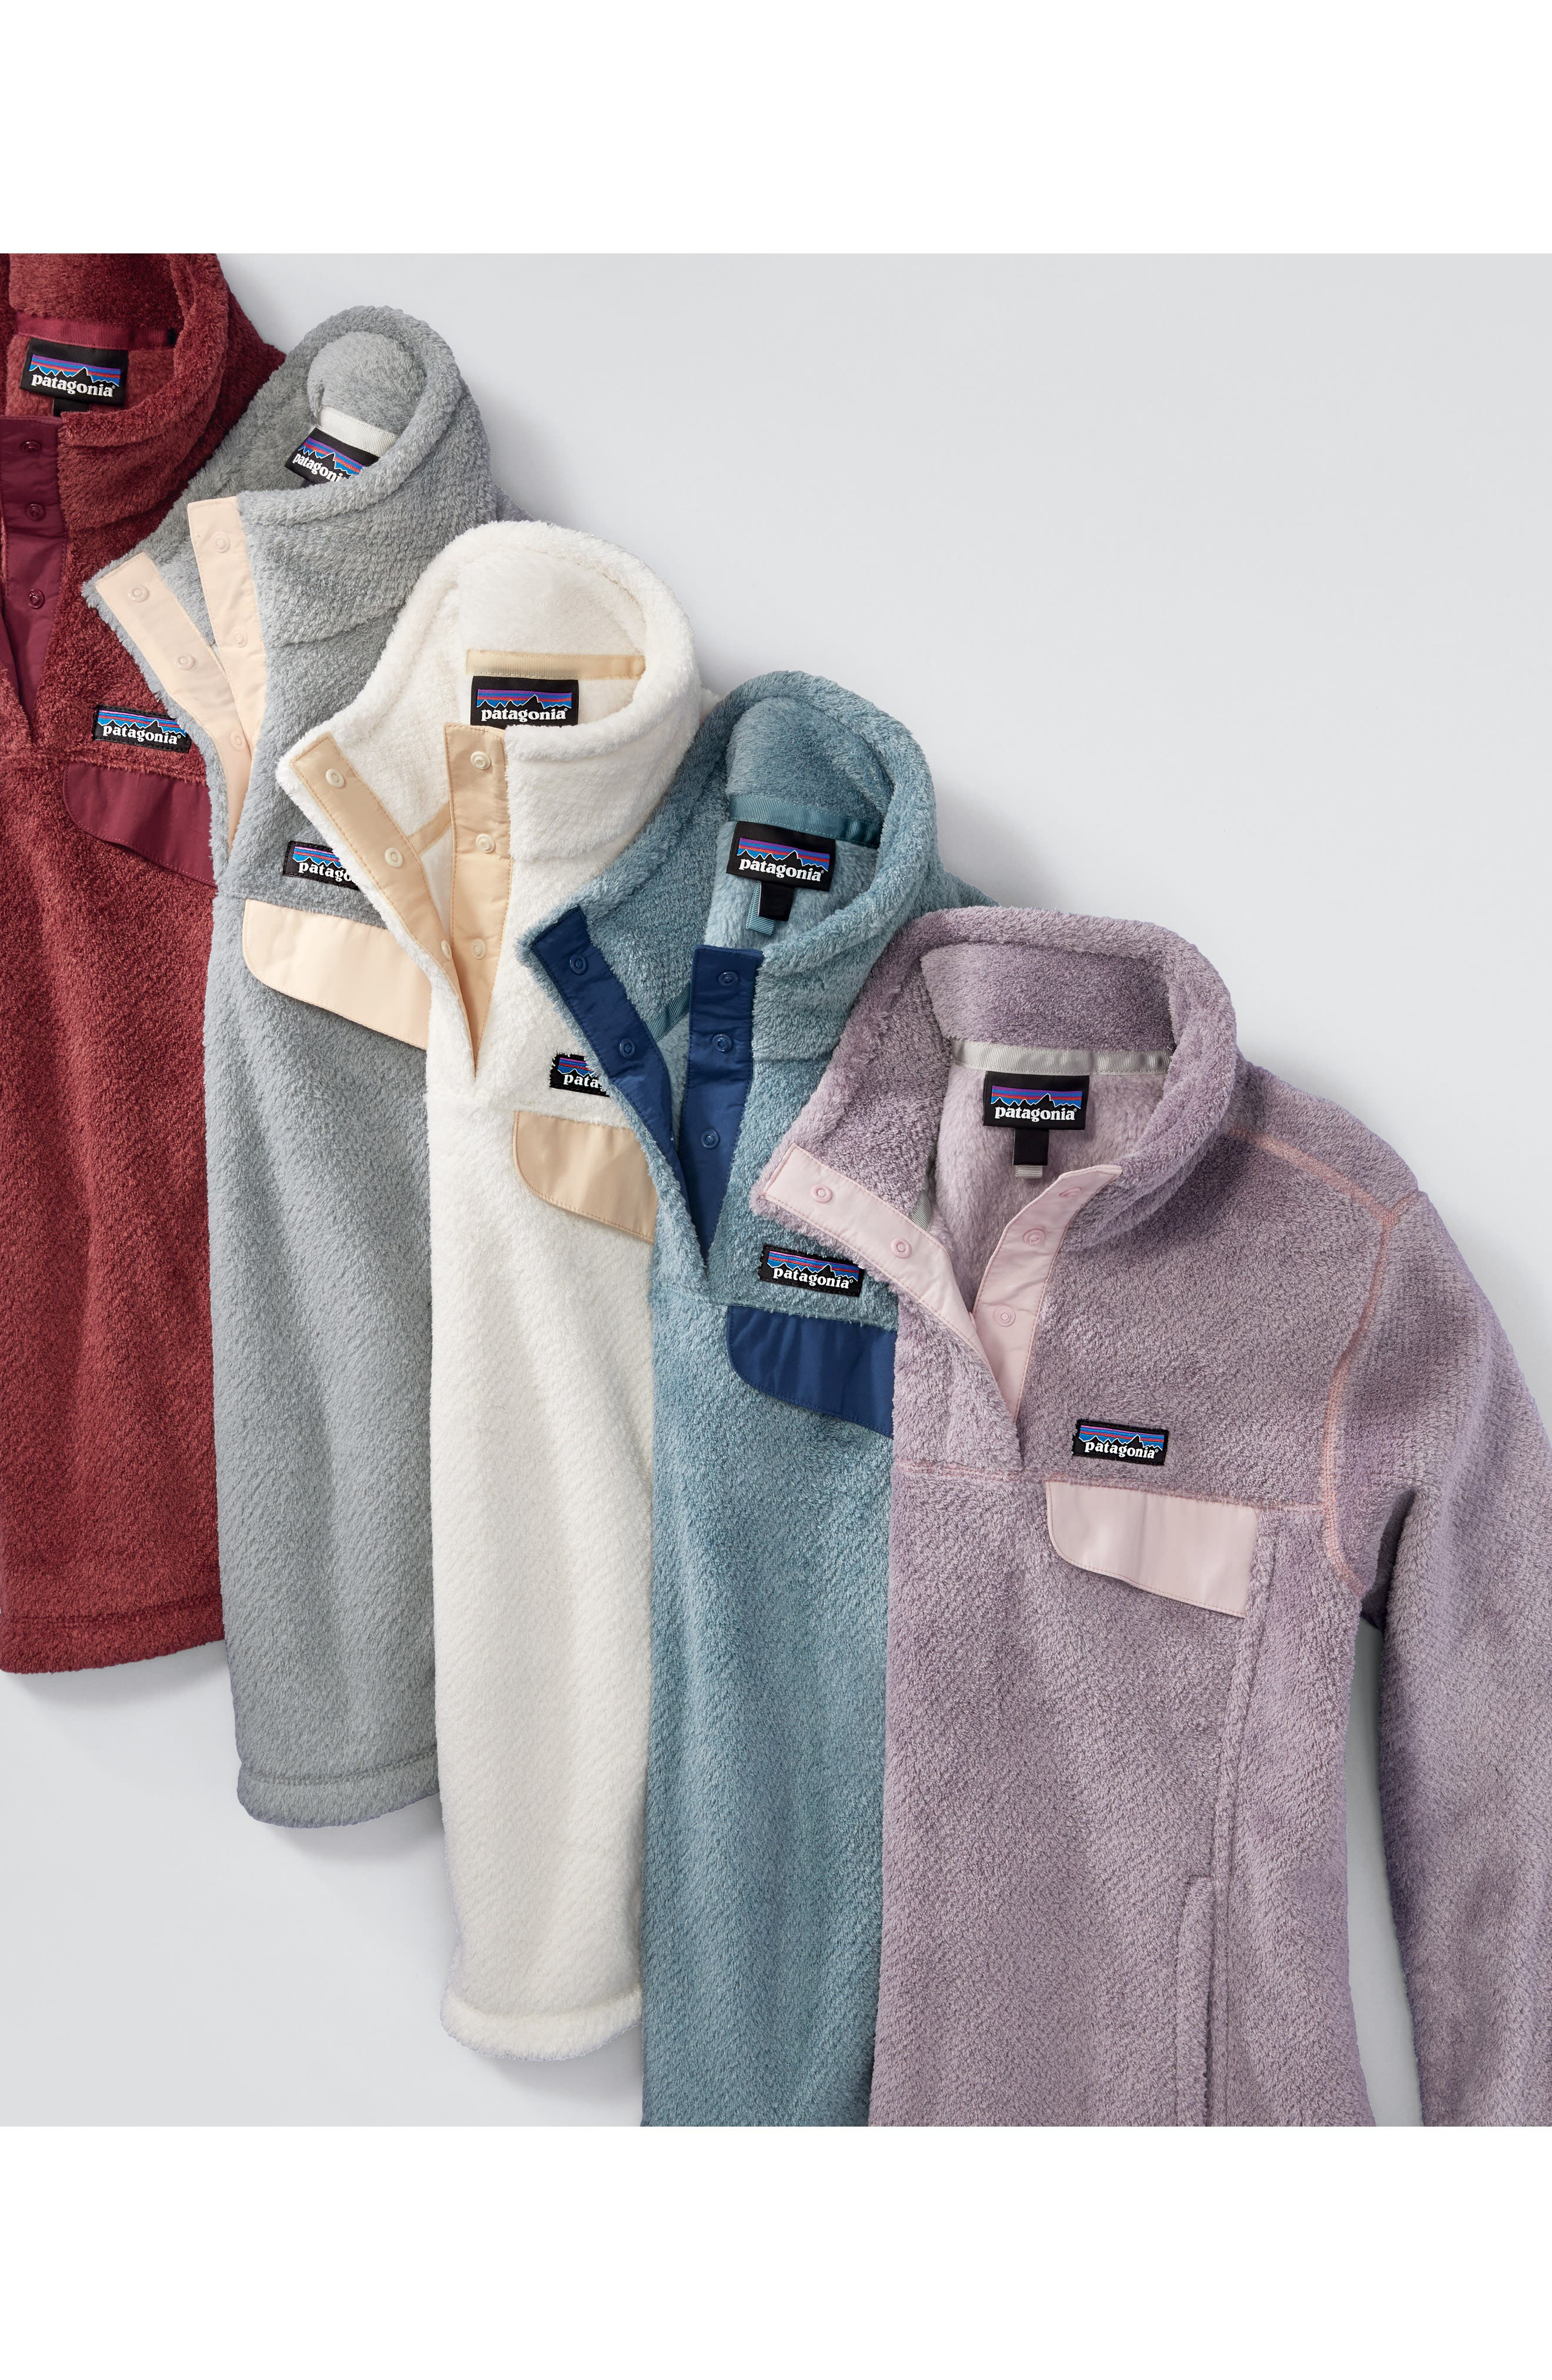 Re-Tool Snap-T<sup>®</sup> Fleece Pullover,                             Alternate thumbnail 8, color,                             SMOKEY VIOLET PURPLE X-DYE